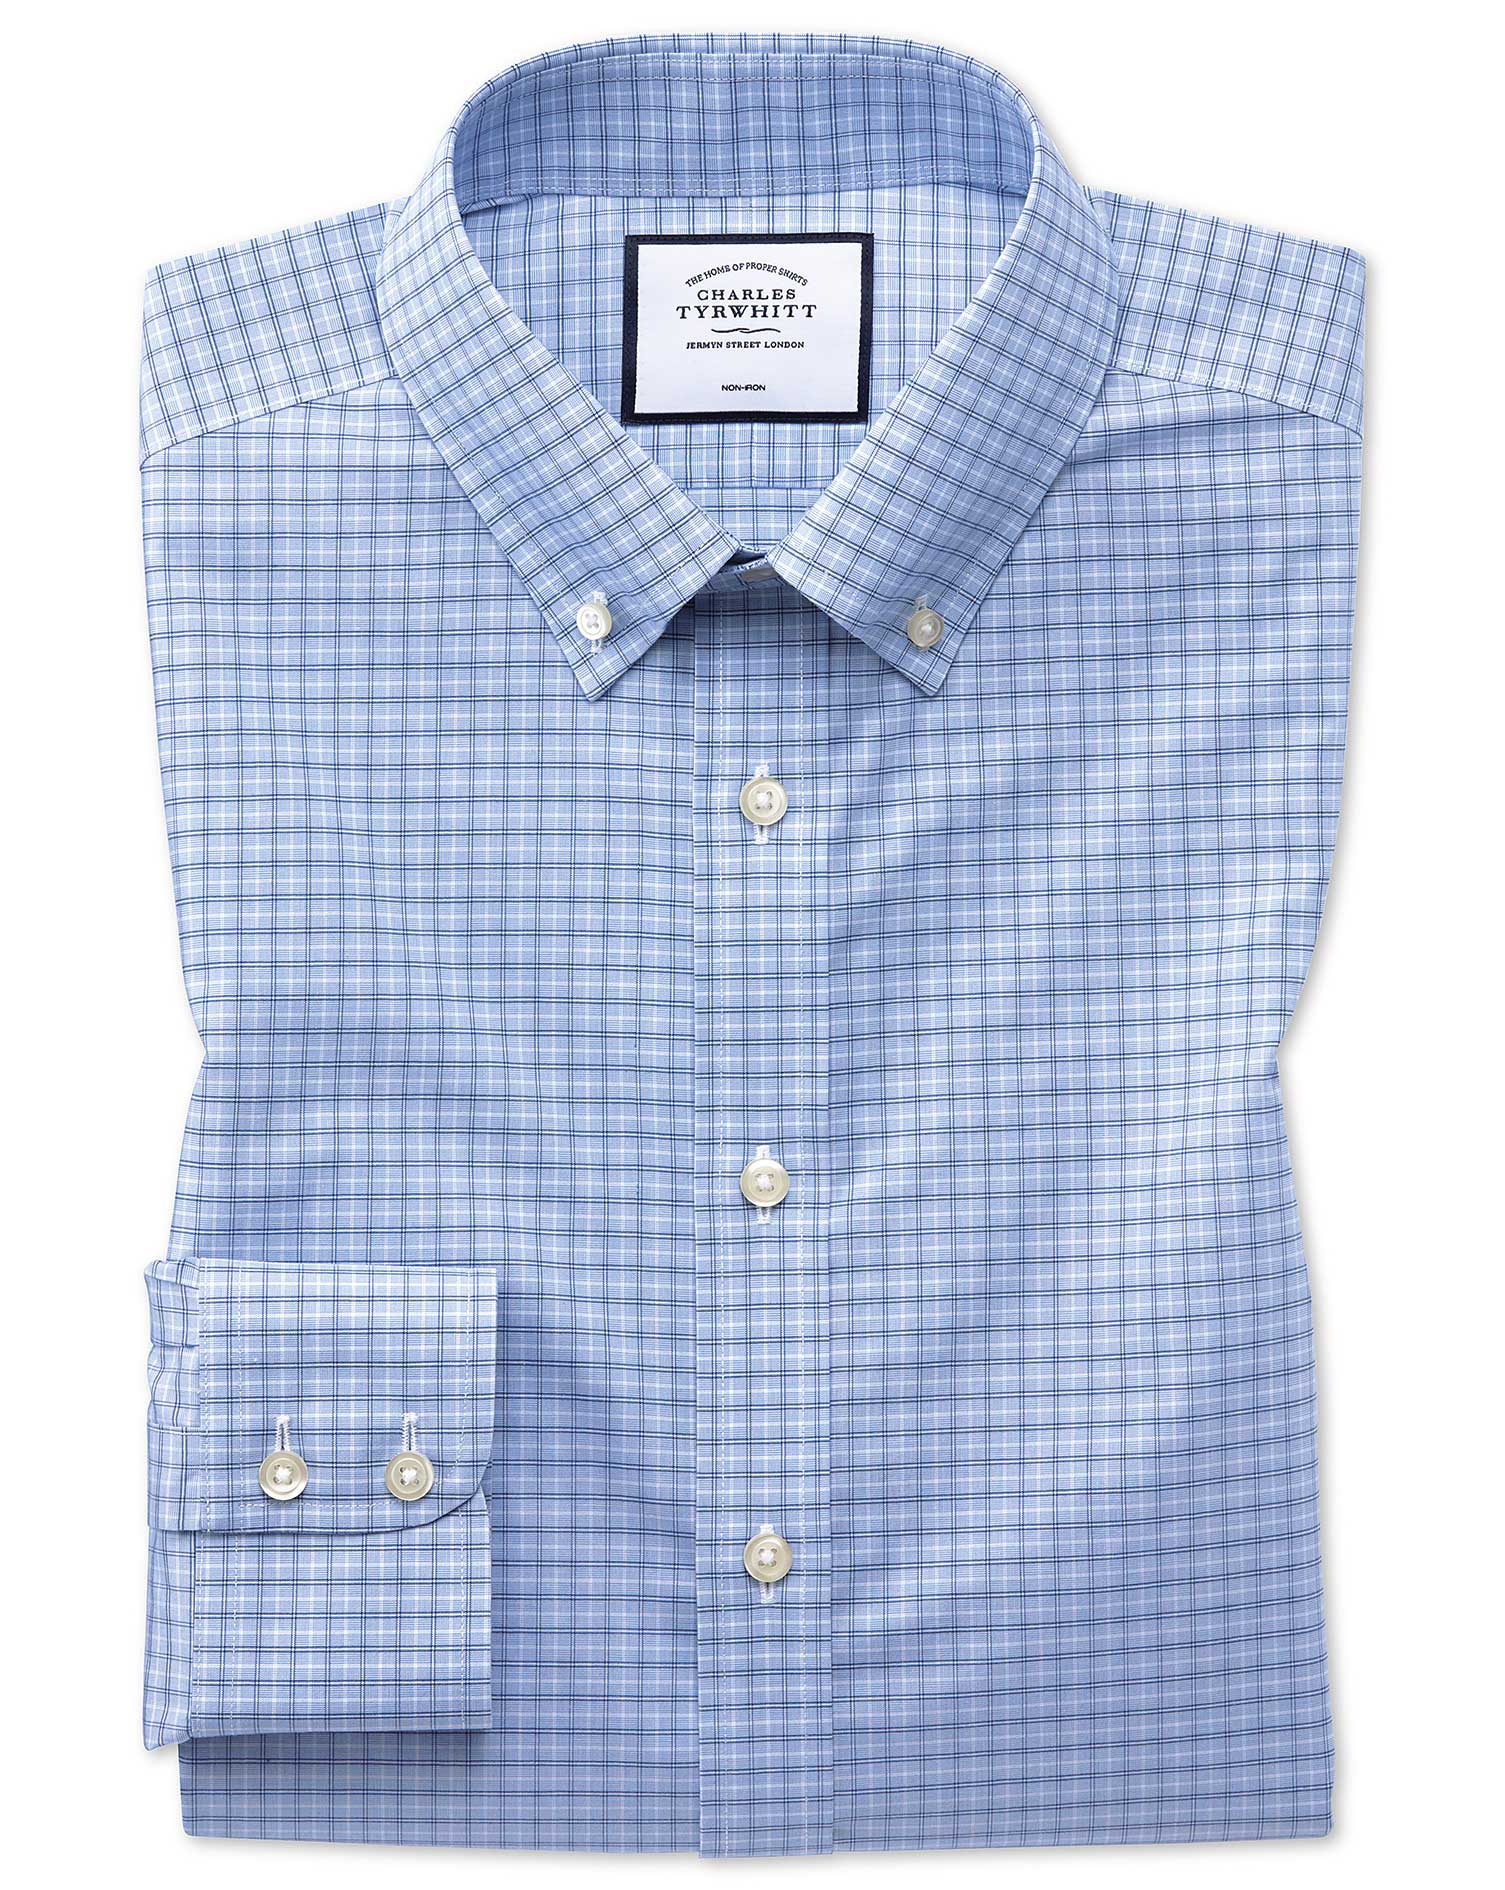 Classic Fit Non-Iron Button-Down Sky Blue Check Cotton Formal Shirt Single Cuff Size 16/35 by Charle